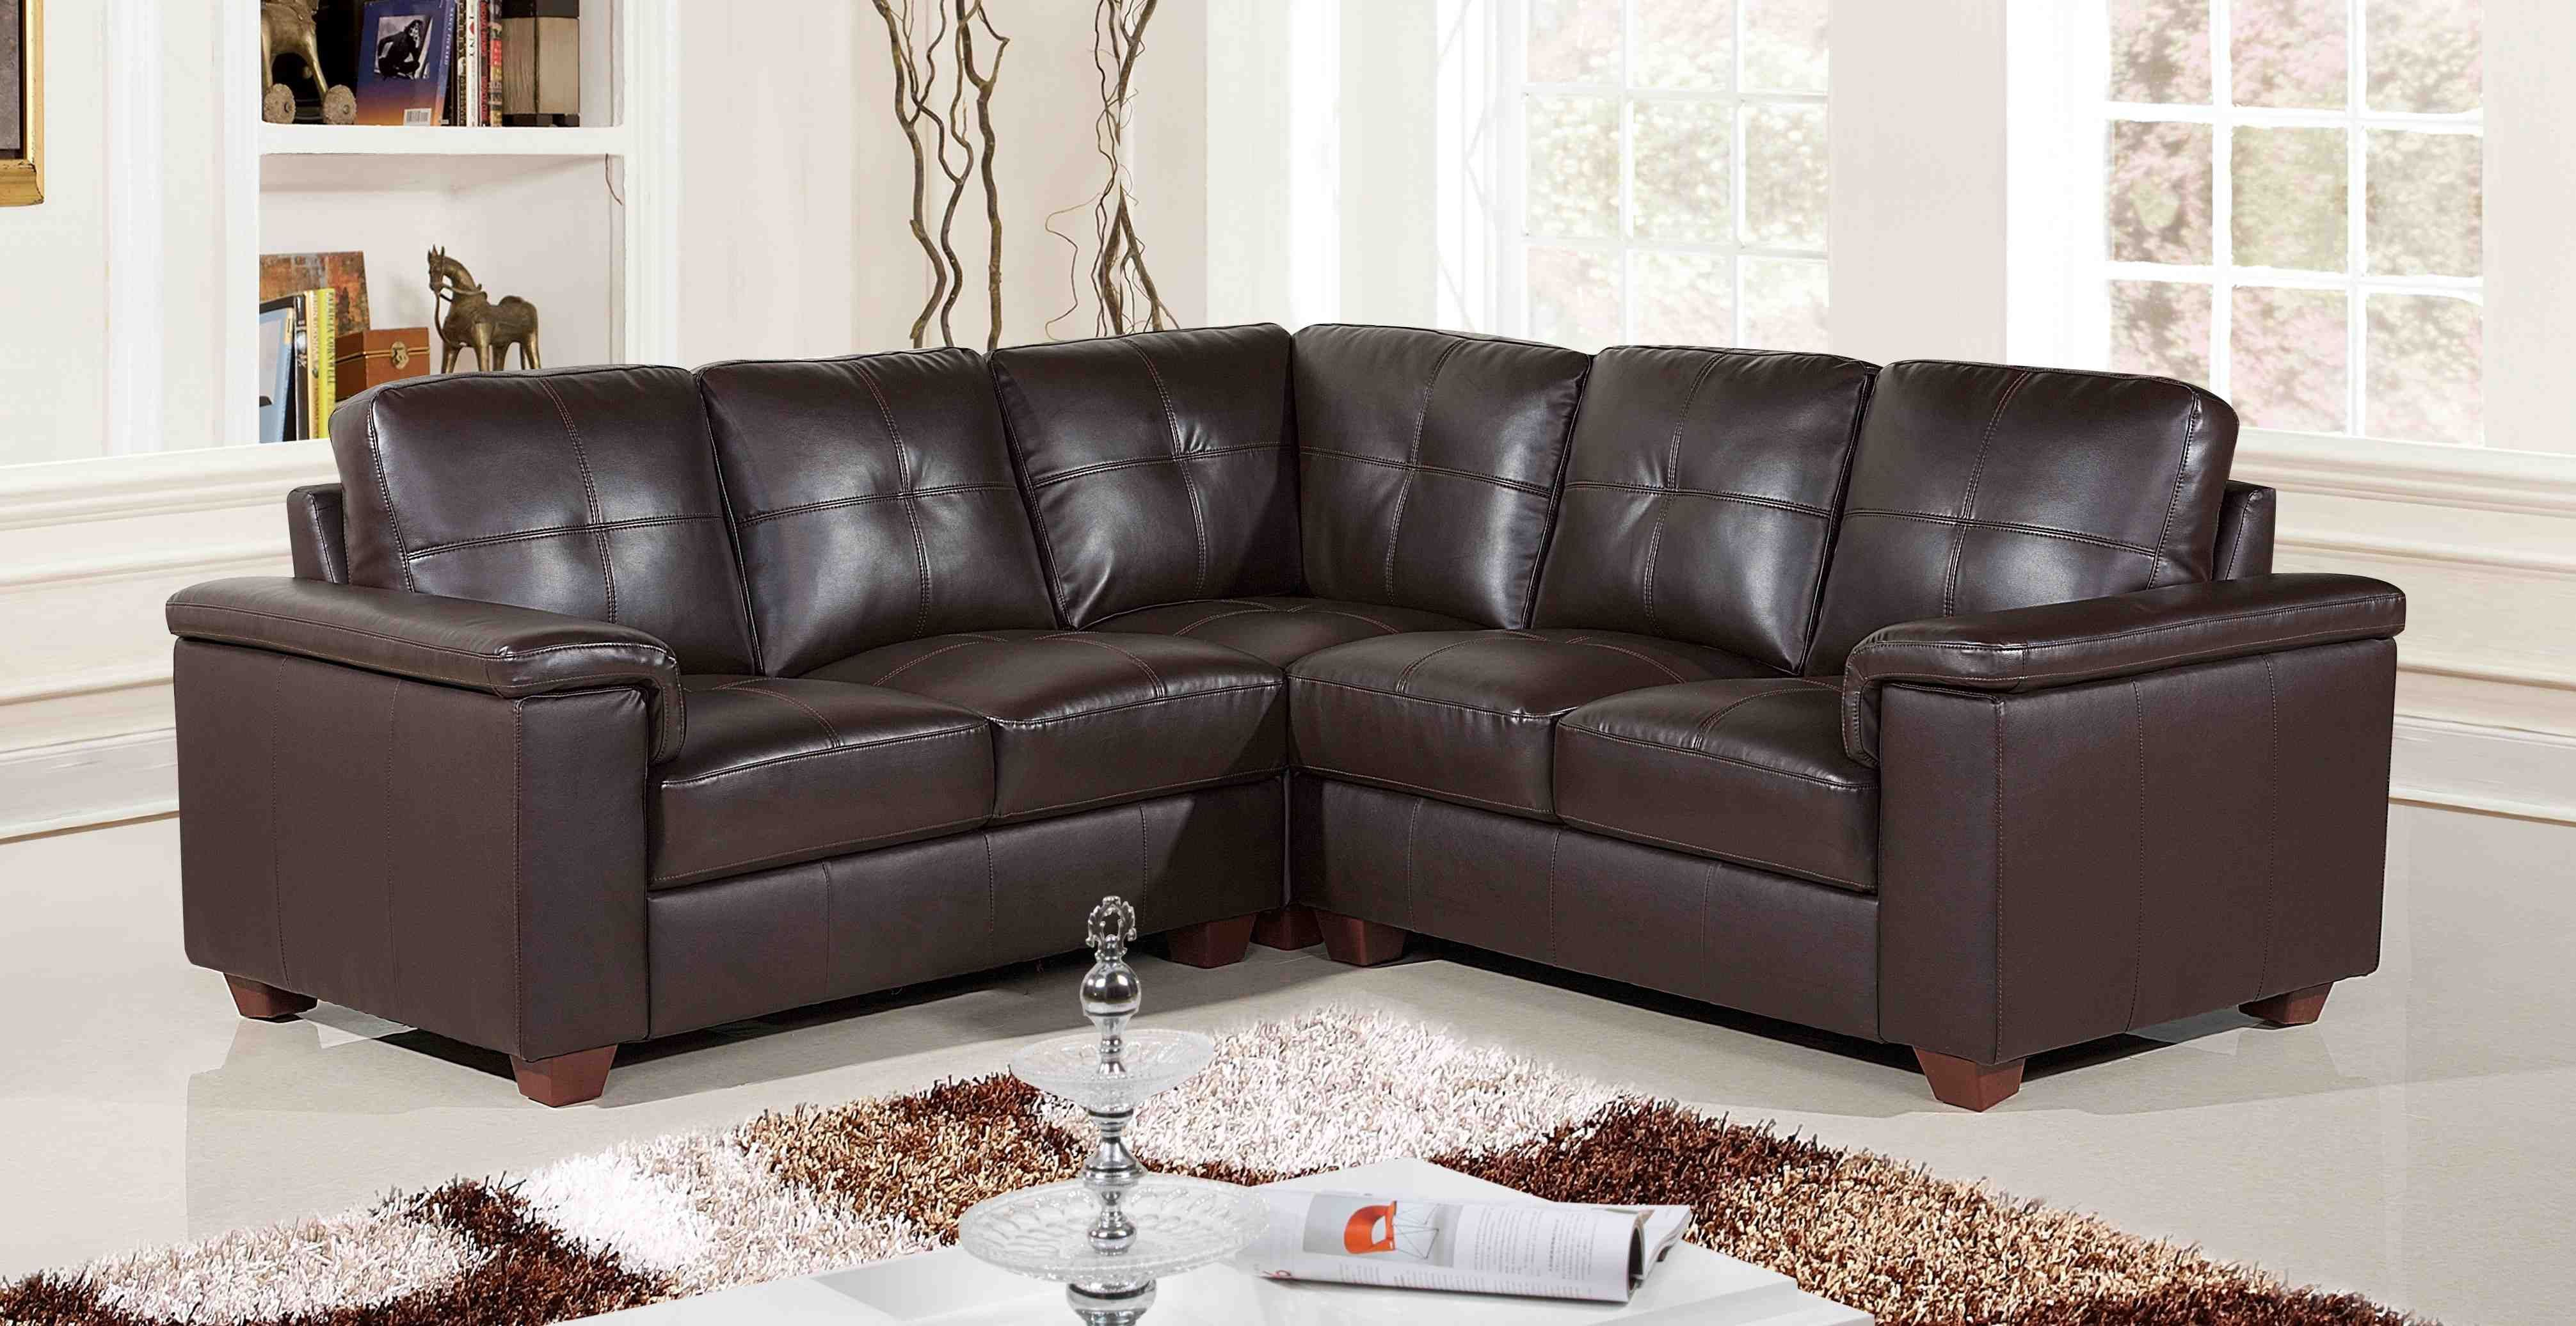 Get Inspired For Second Hand Leather Sofas For Sale In 2020 Leather Corner Sofa Leather Sofa Sale Sofa Deals